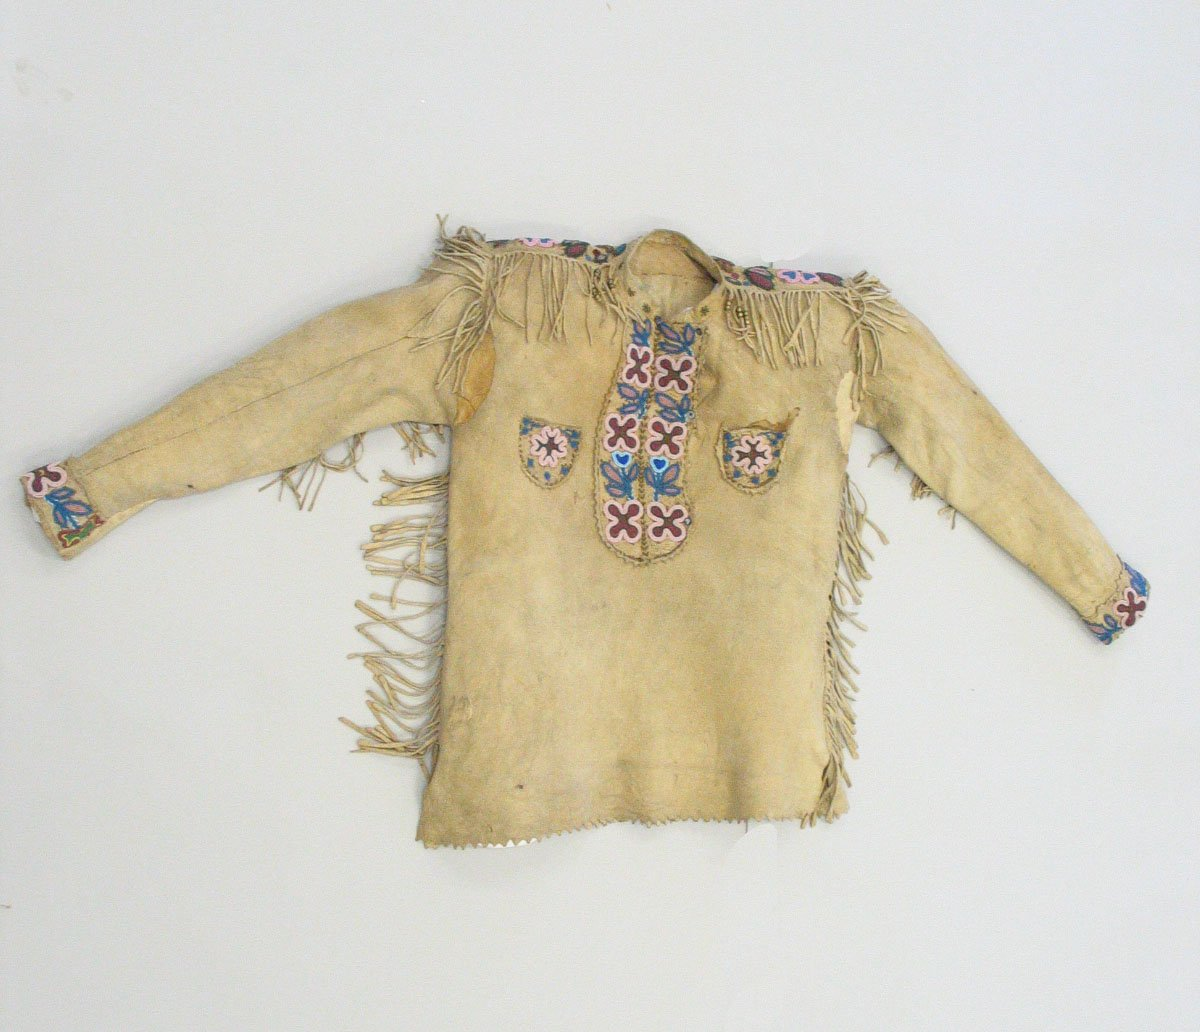 Brooklyn Museum: Shirt